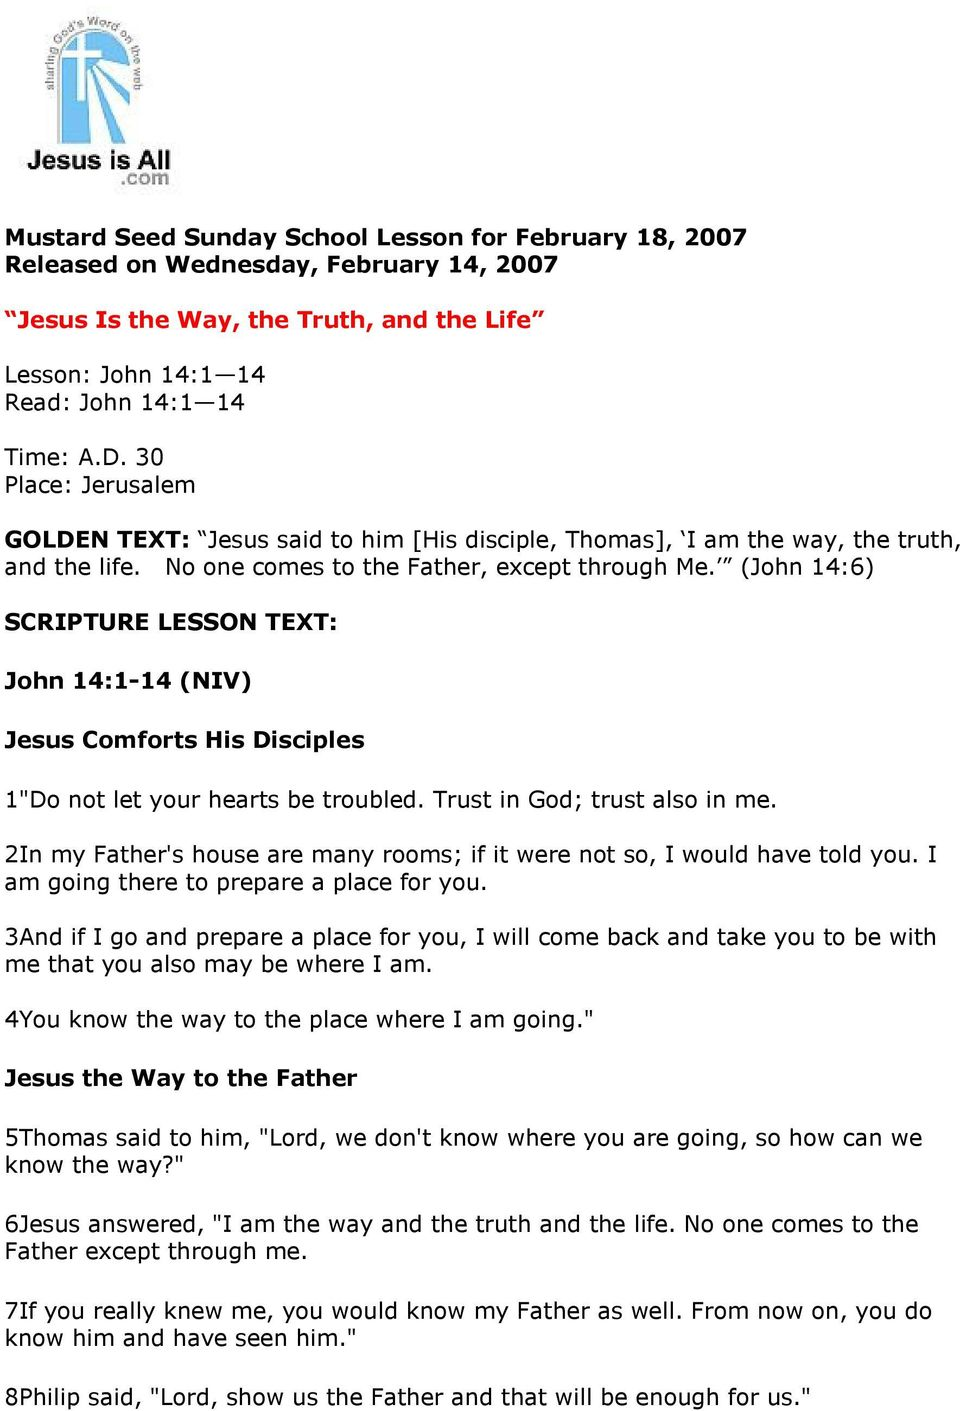 "(John 14:6) SCRIPTURE LESSON TEXT: John 14:1-14 (NIV) Jesus Comforts His Disciples 1""Do not let your hearts be troubled. Trust in God; trust also in me."